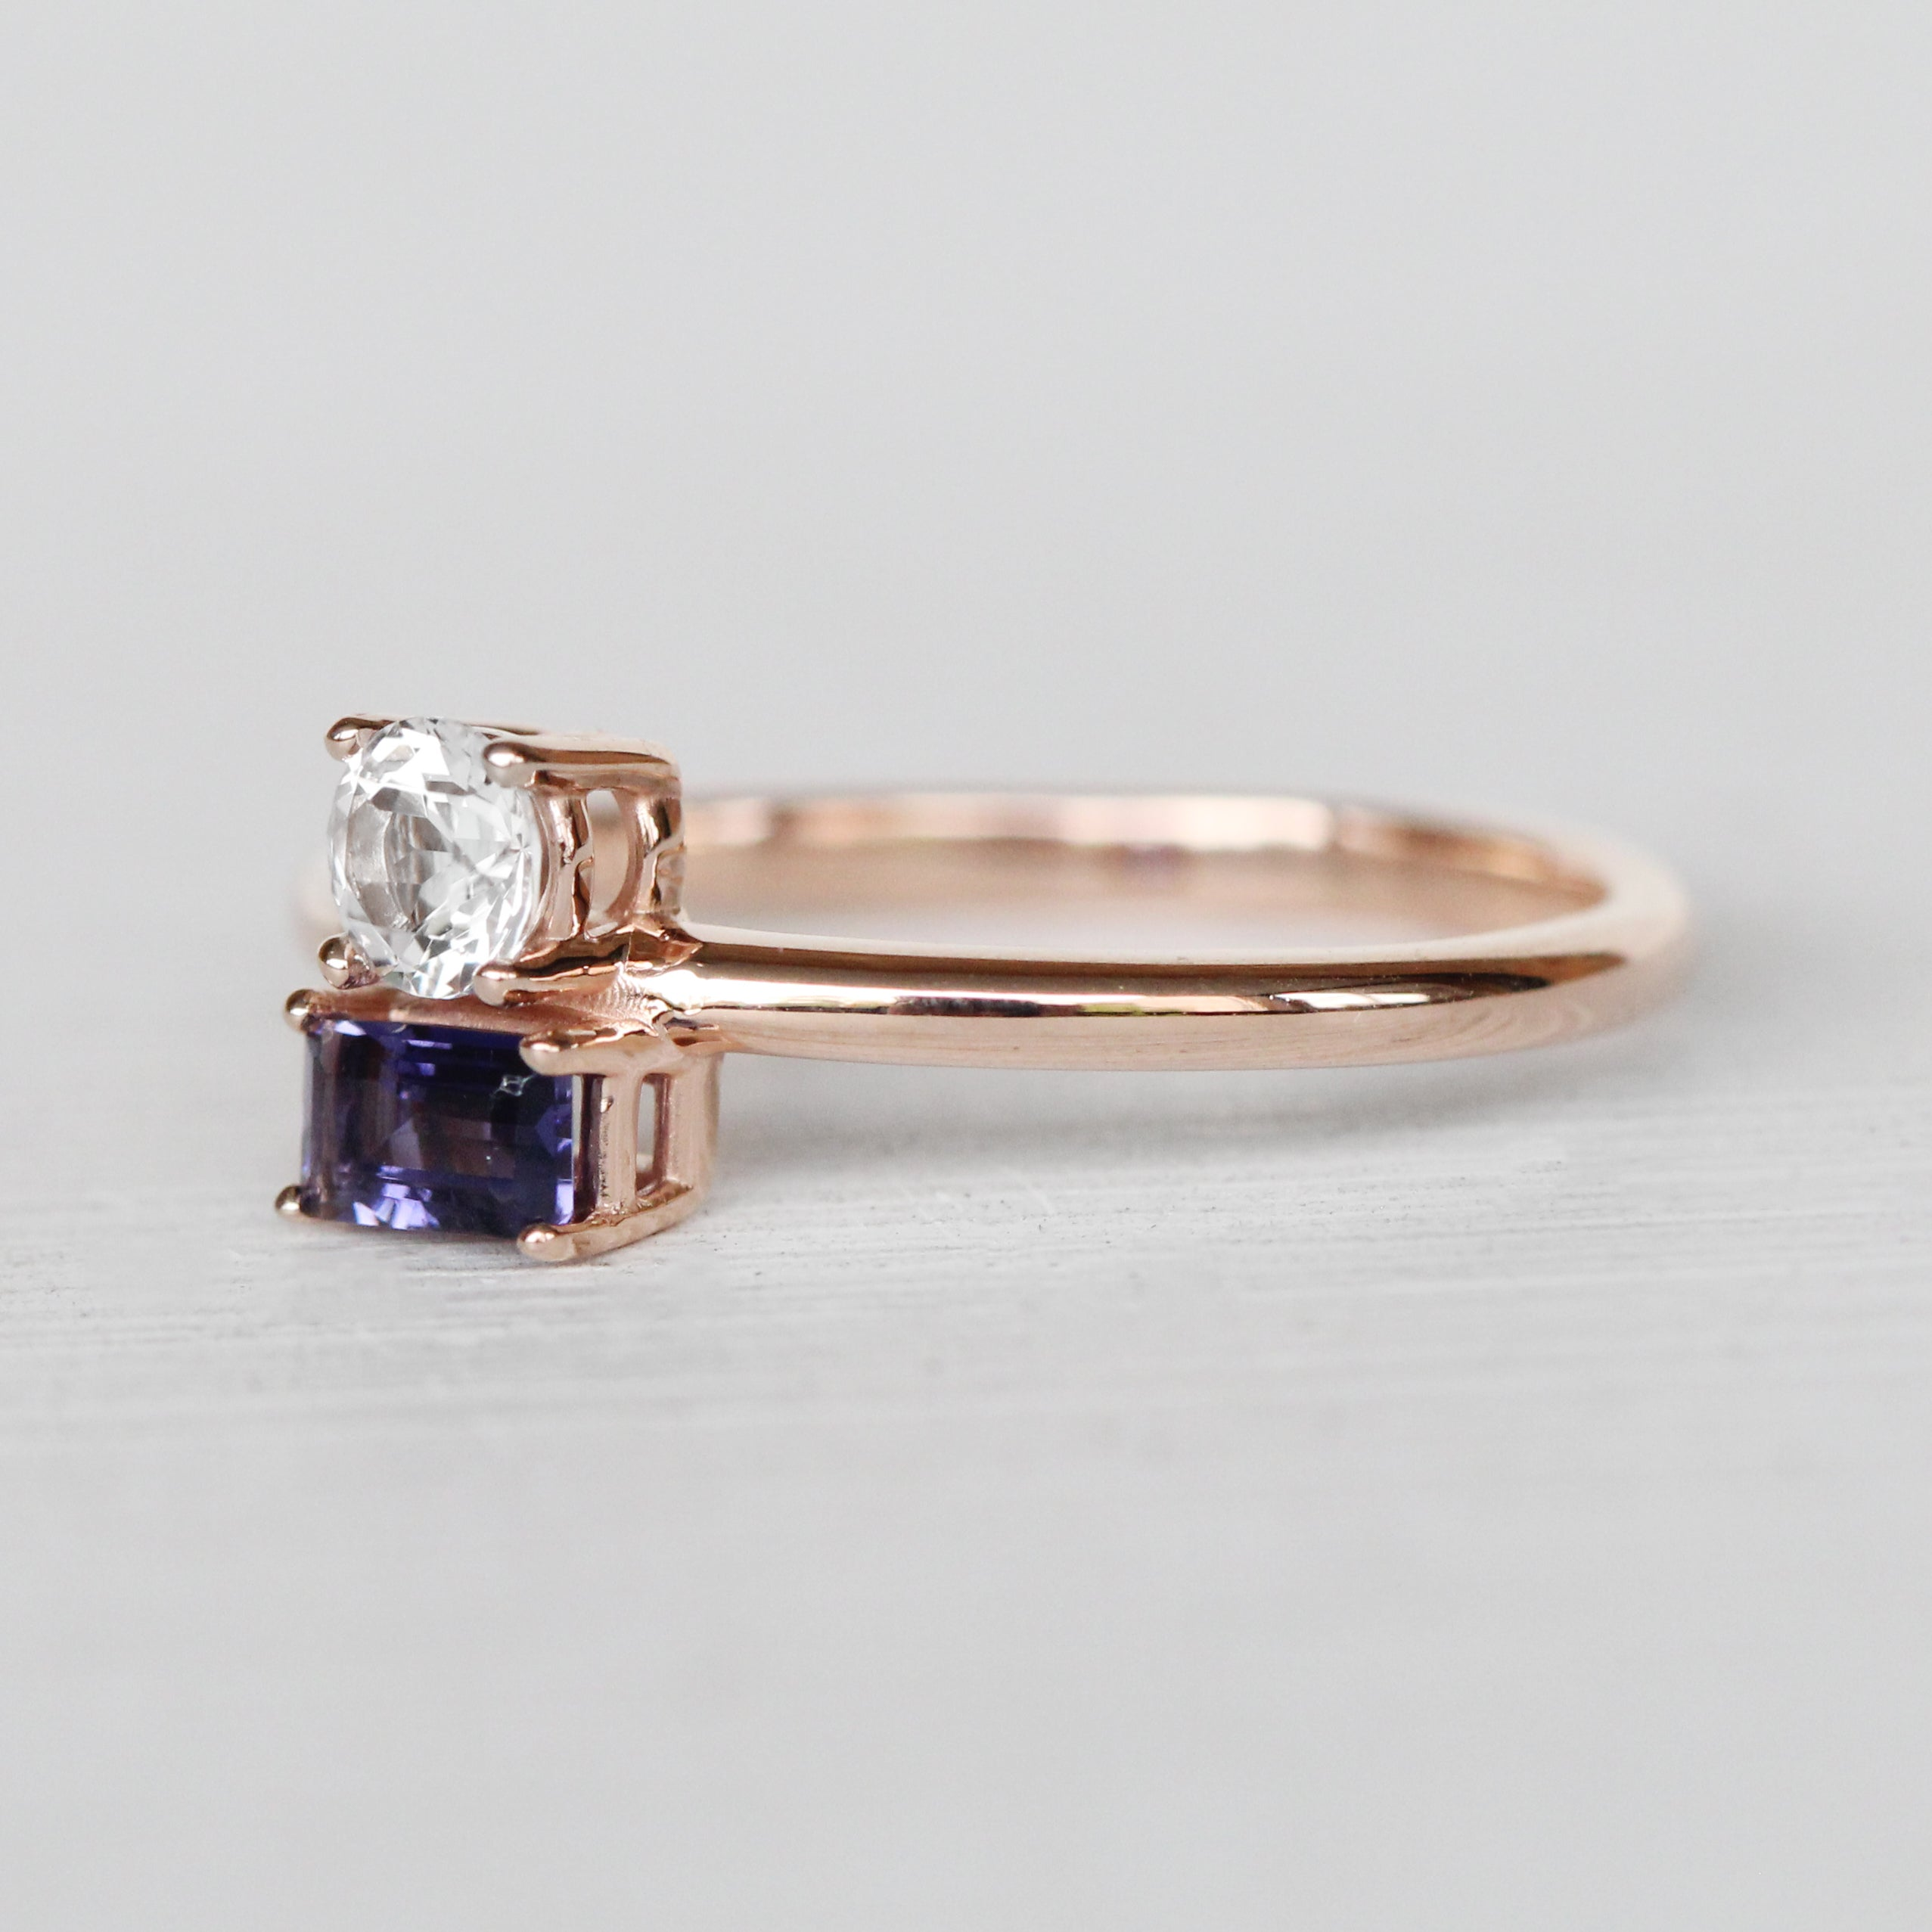 Darley Topaz and Iolite Asymmetrical Double Ring - Your choice of metal - Custom - Celestial Diamonds ® by Midwinter Co.